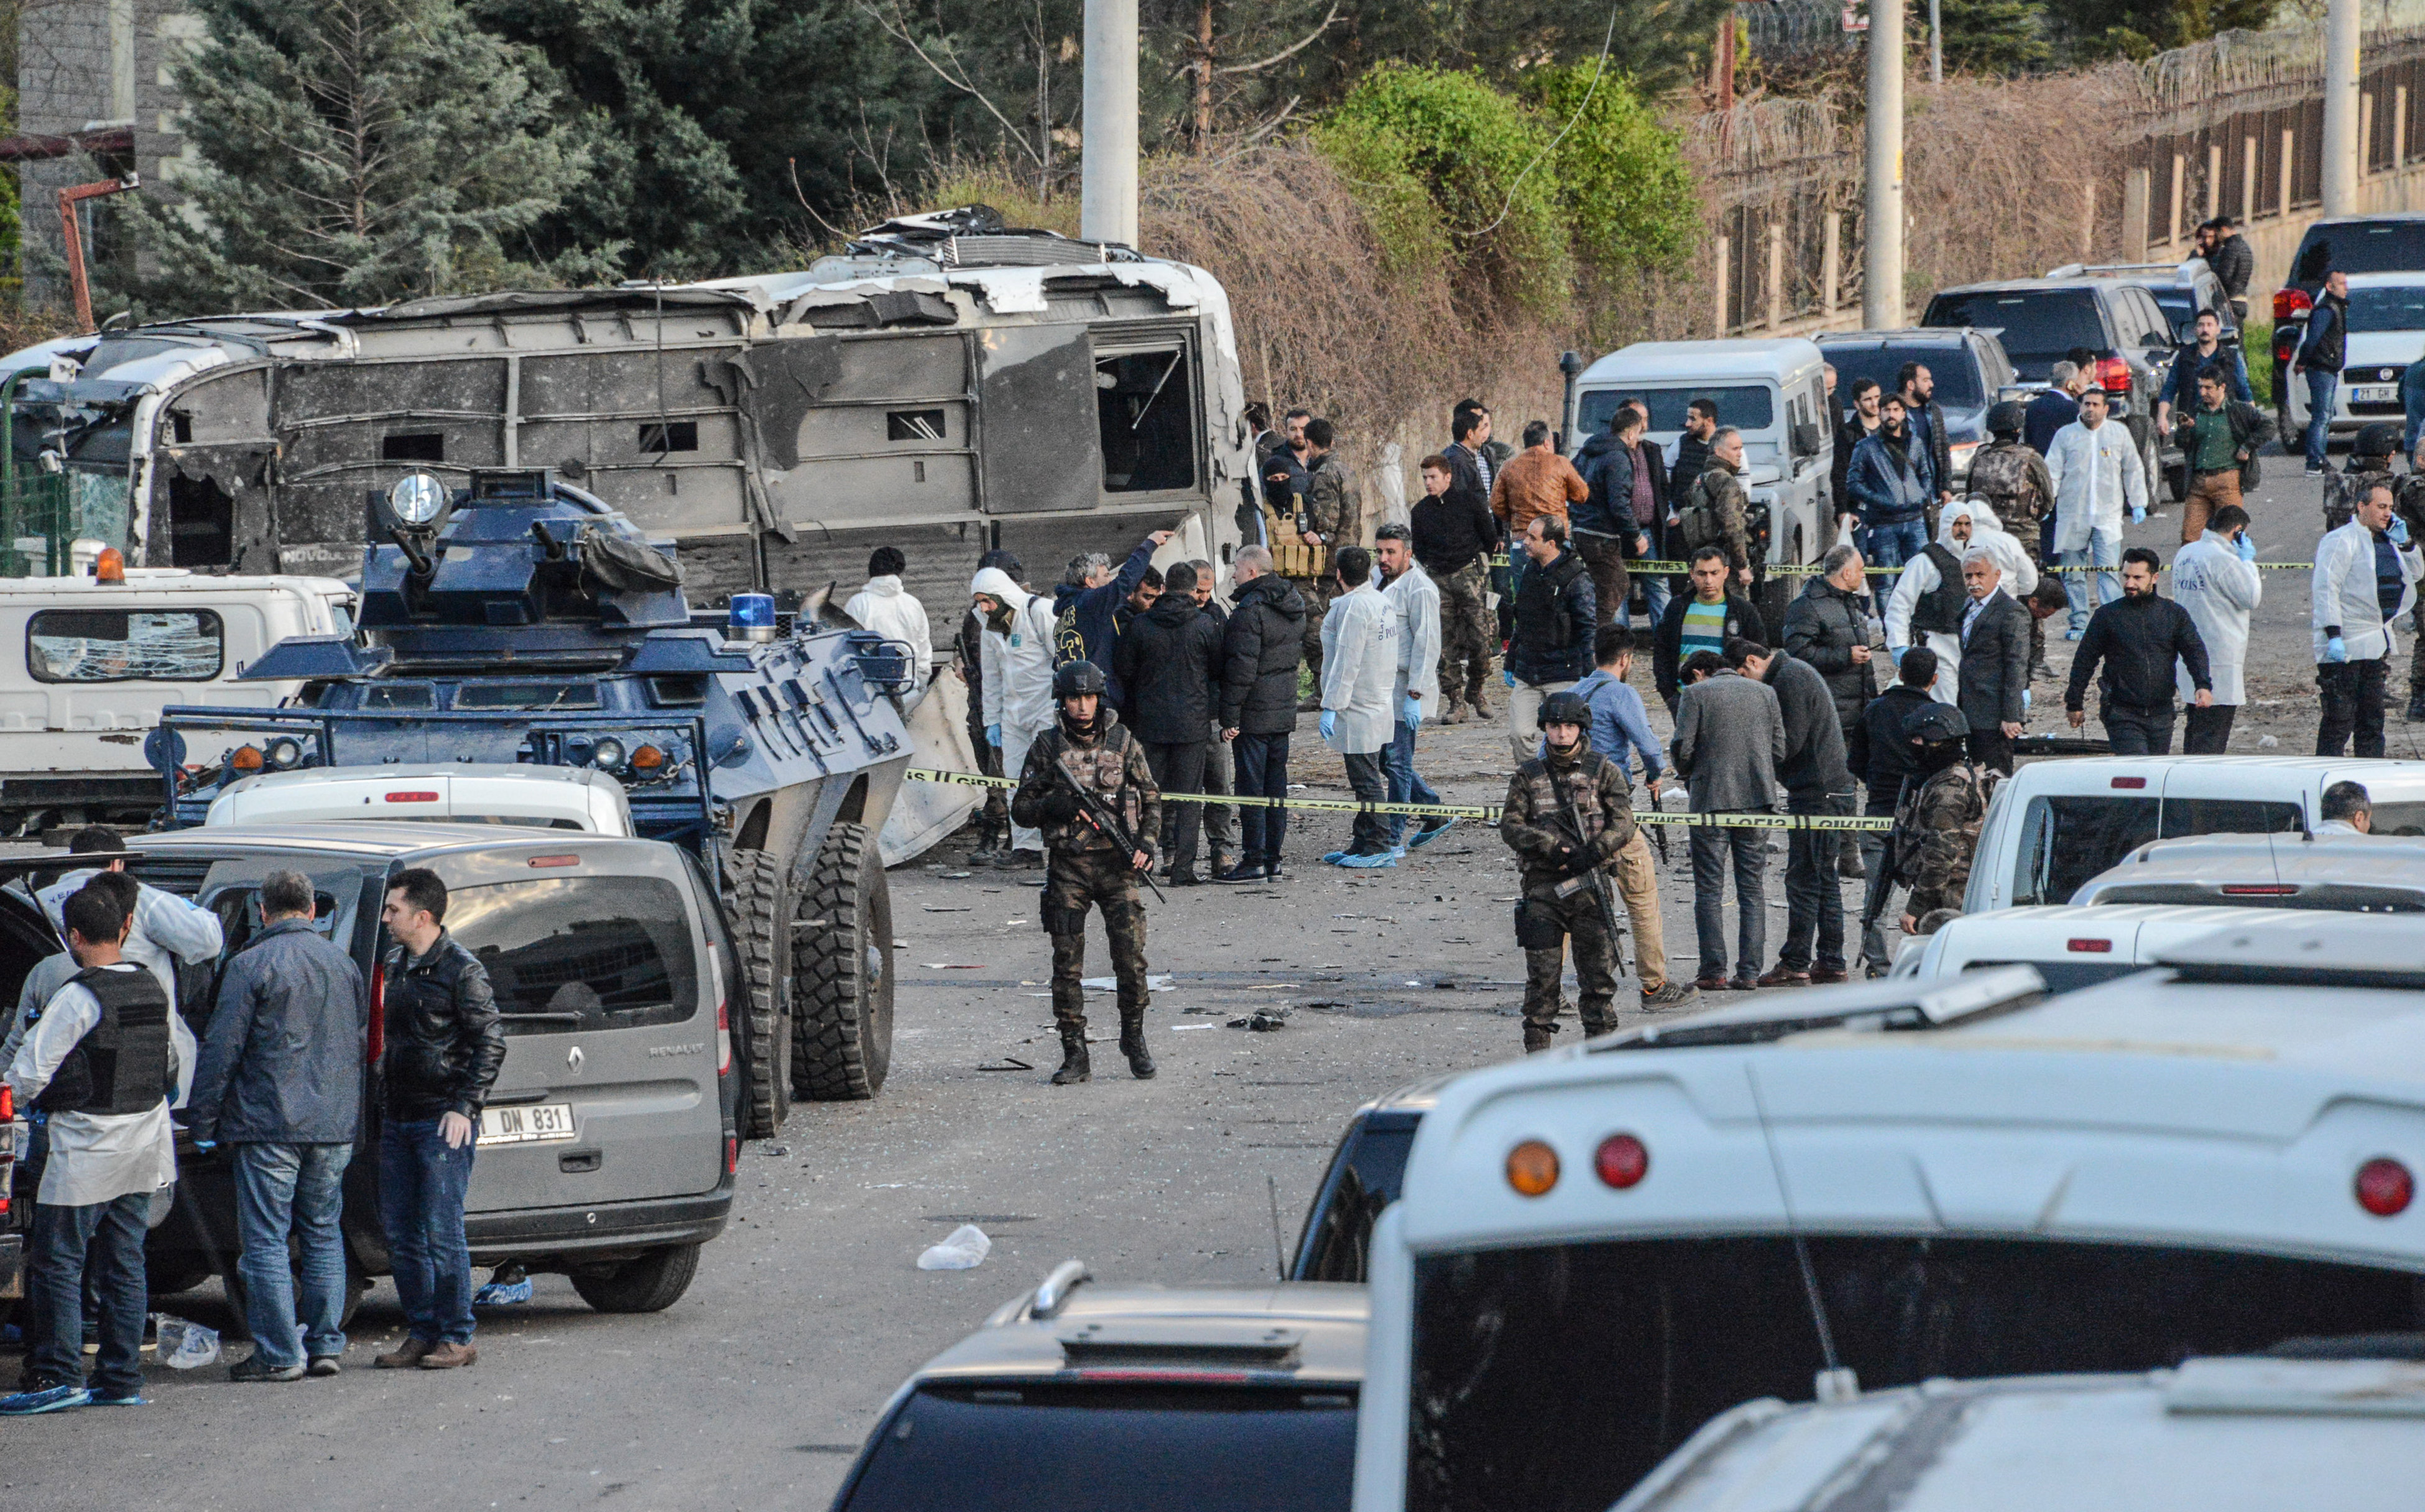 Turkish special force police officers walk at the site of a bomb attack in Diyarbakir, southeastern Turkey, on March 31, 2016